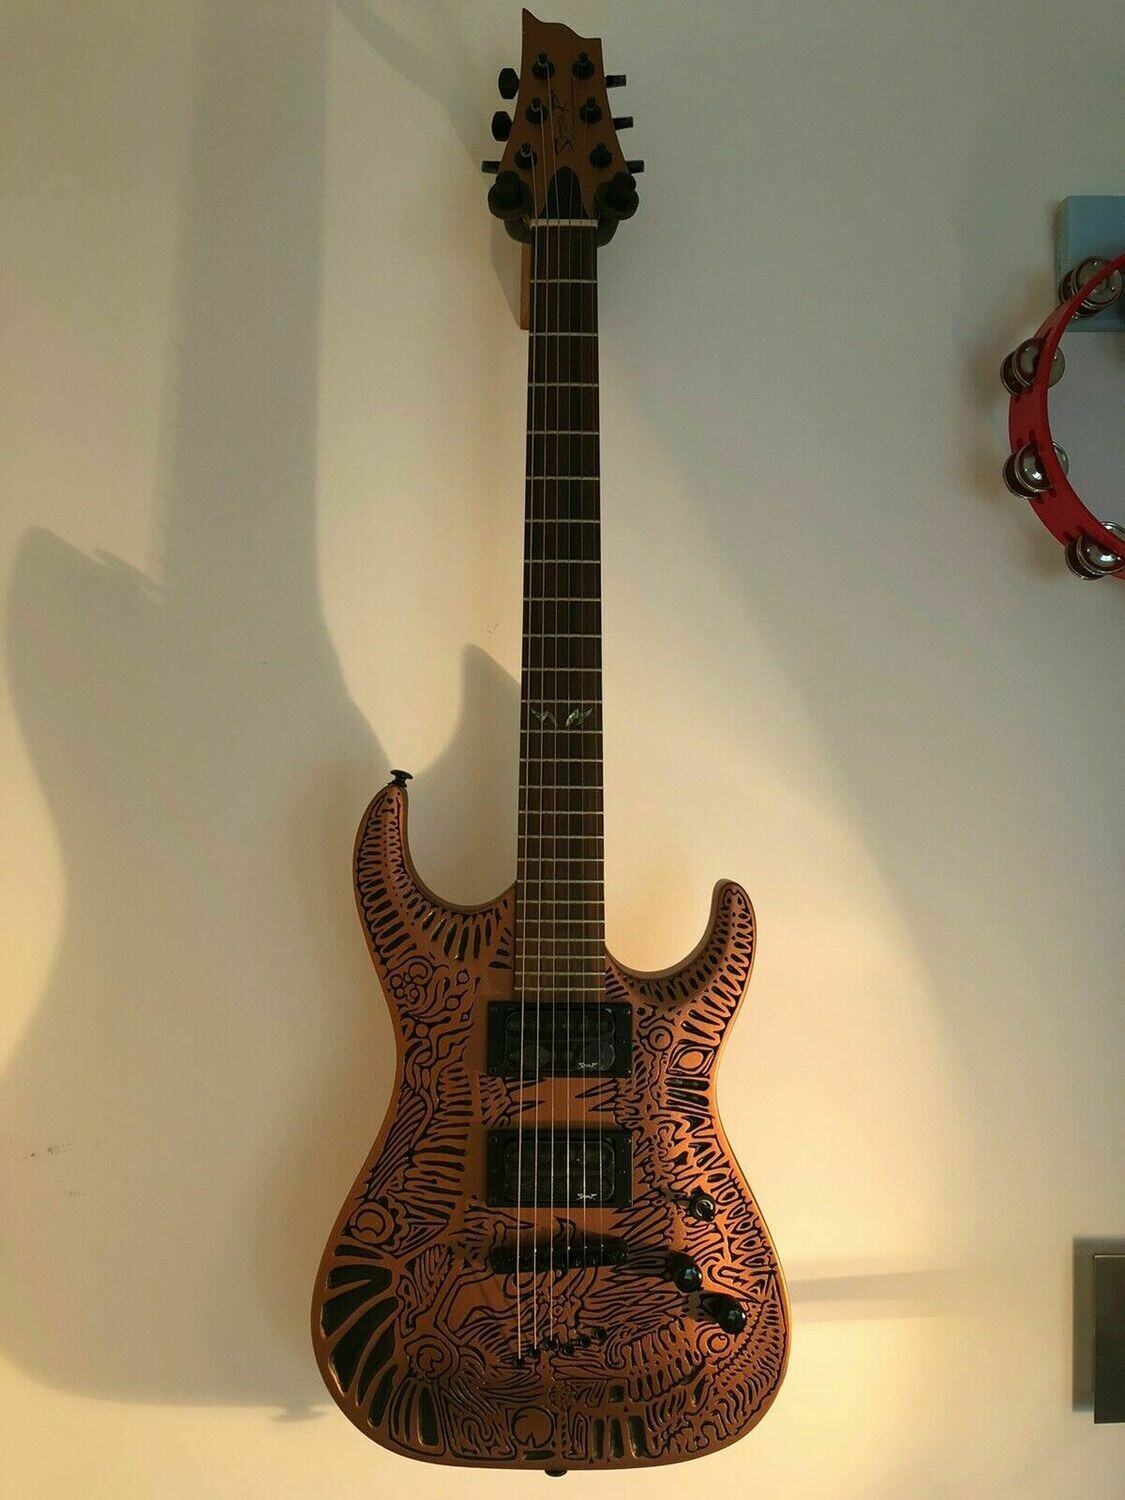 Spear Electric Guitar Bronze Tiger TC-1 with Luthite body, embossed, stunning !